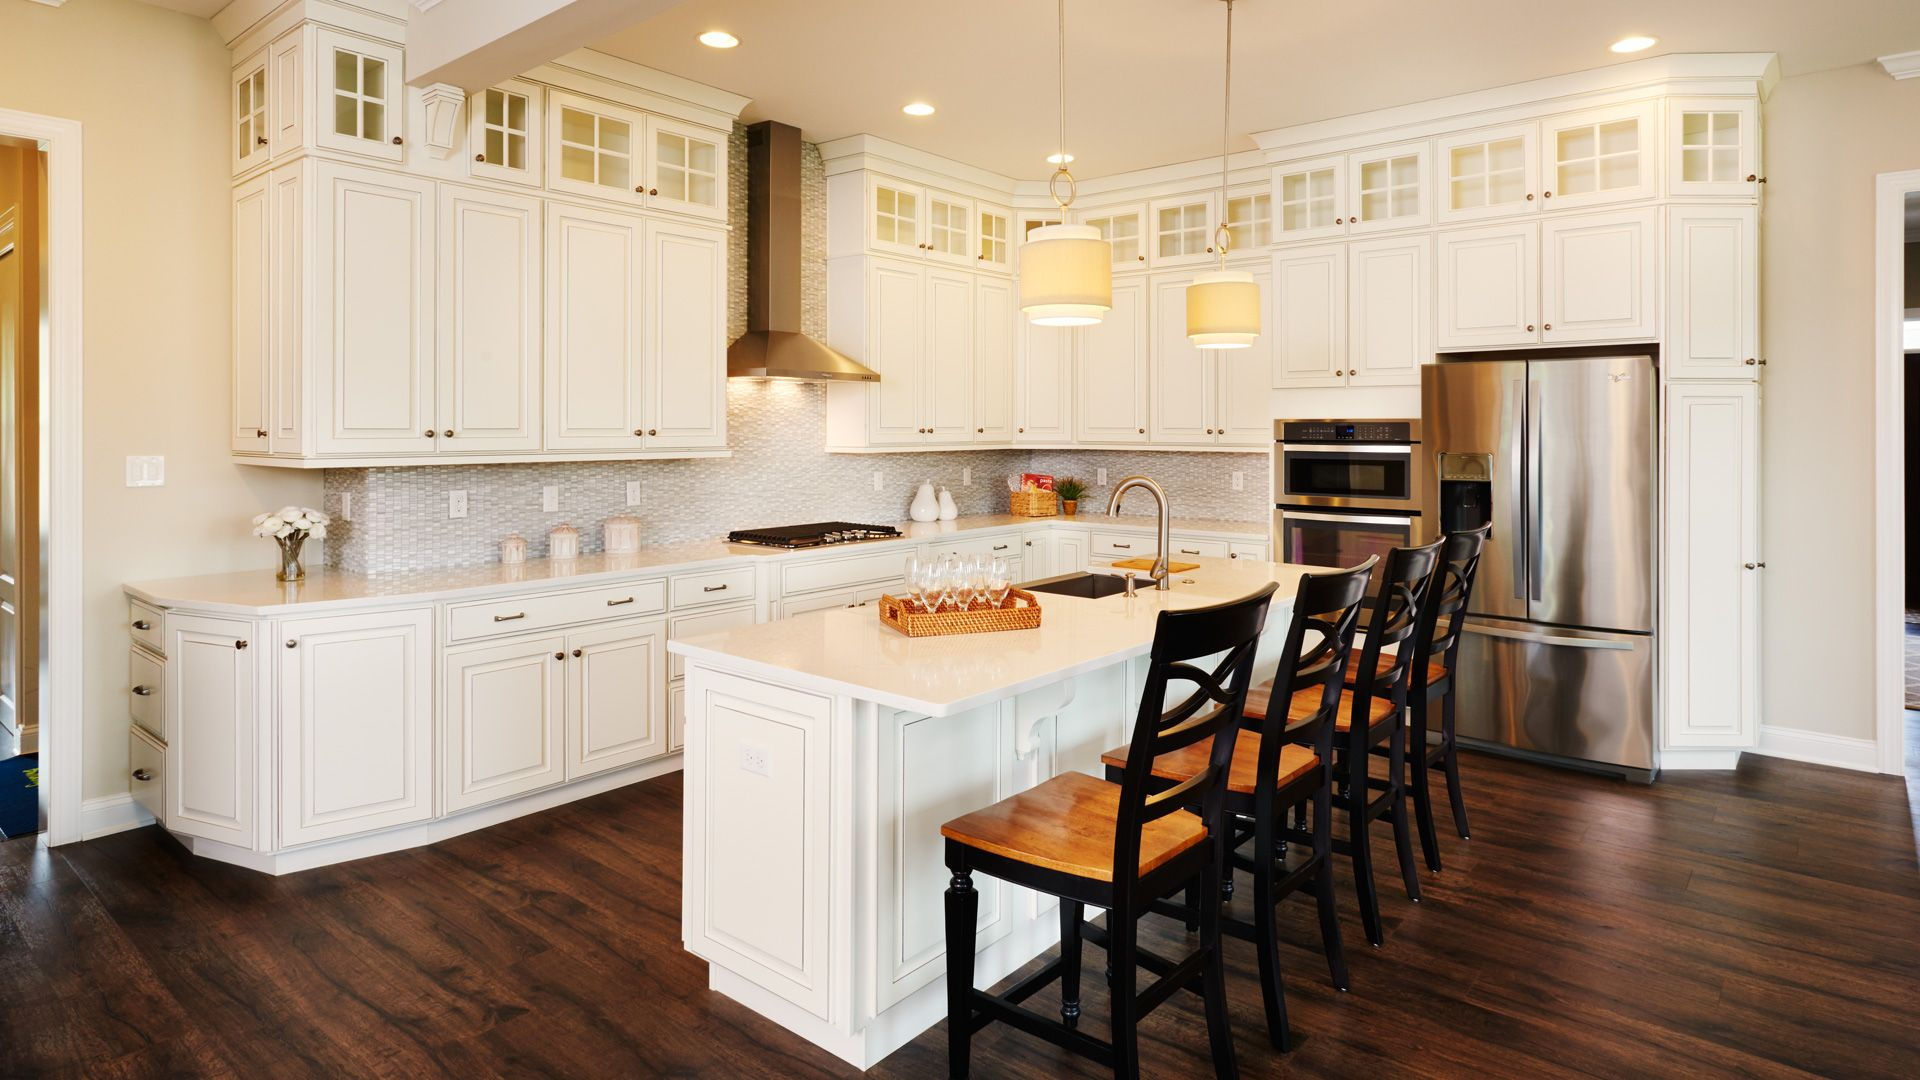 Kitchen featured in the Montgomery By S & A Homes in York, PA